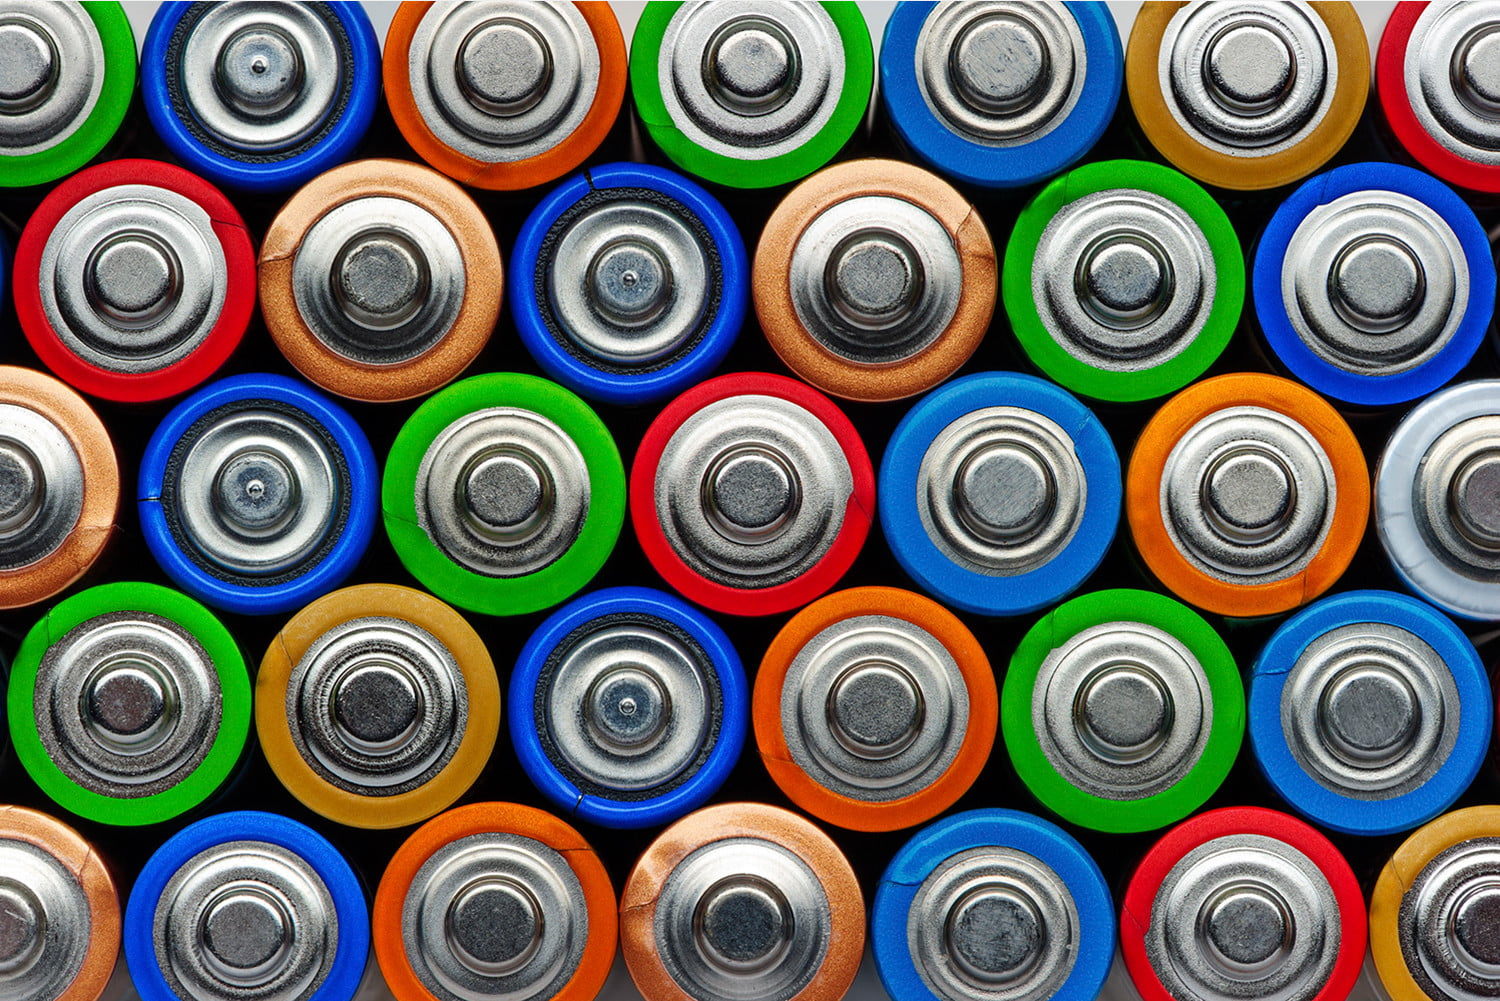 The best rechargeable batteries duracell energizer panasonic the best rechargeable batteries duracell energizer panasonic more digital trends nvjuhfo Gallery